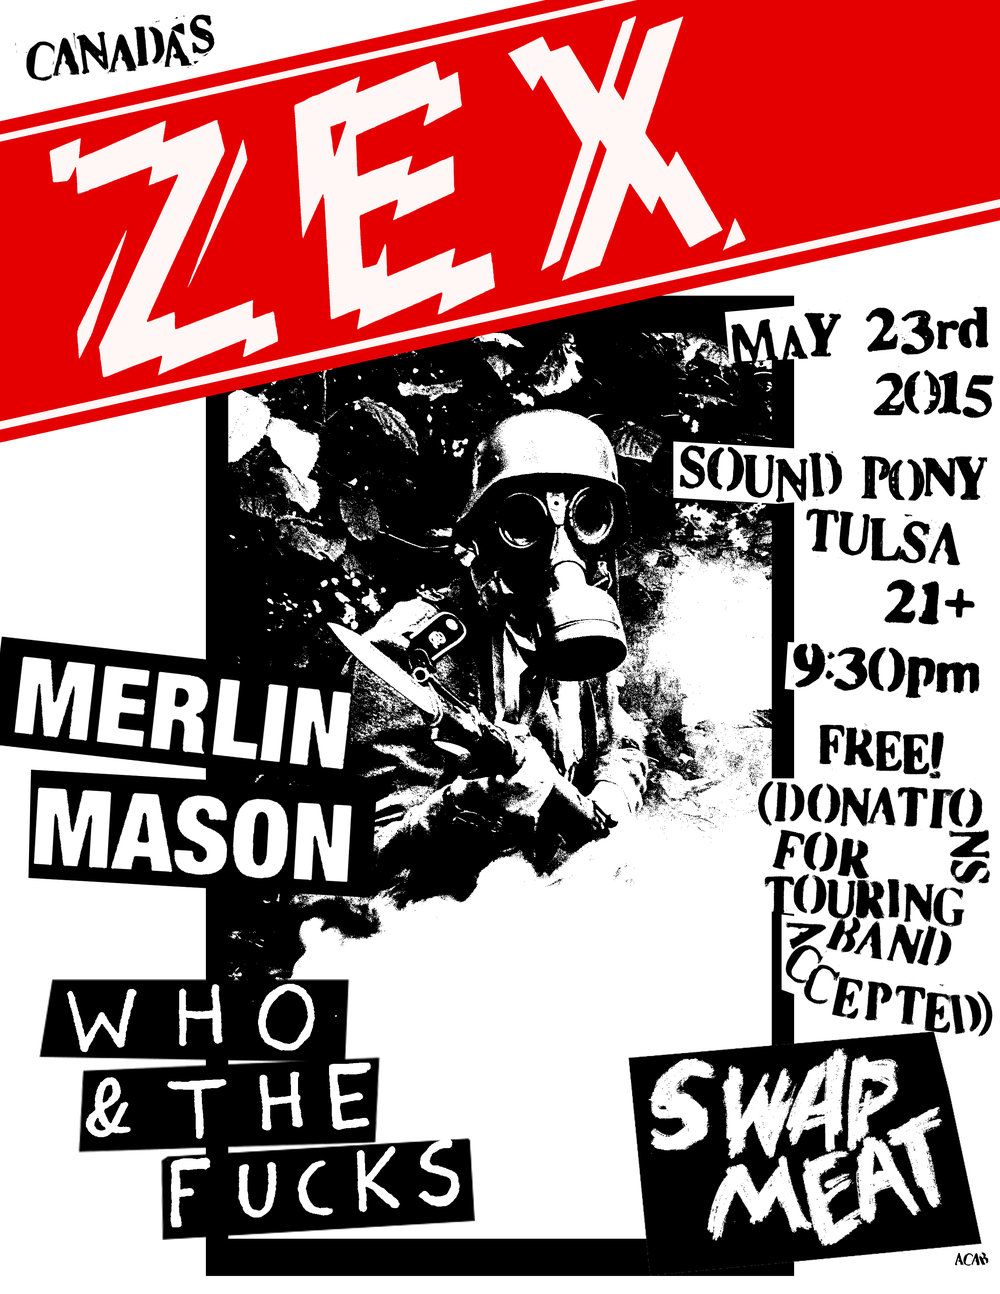 flyer-15.05.23-tulsa-zex-red.jpg